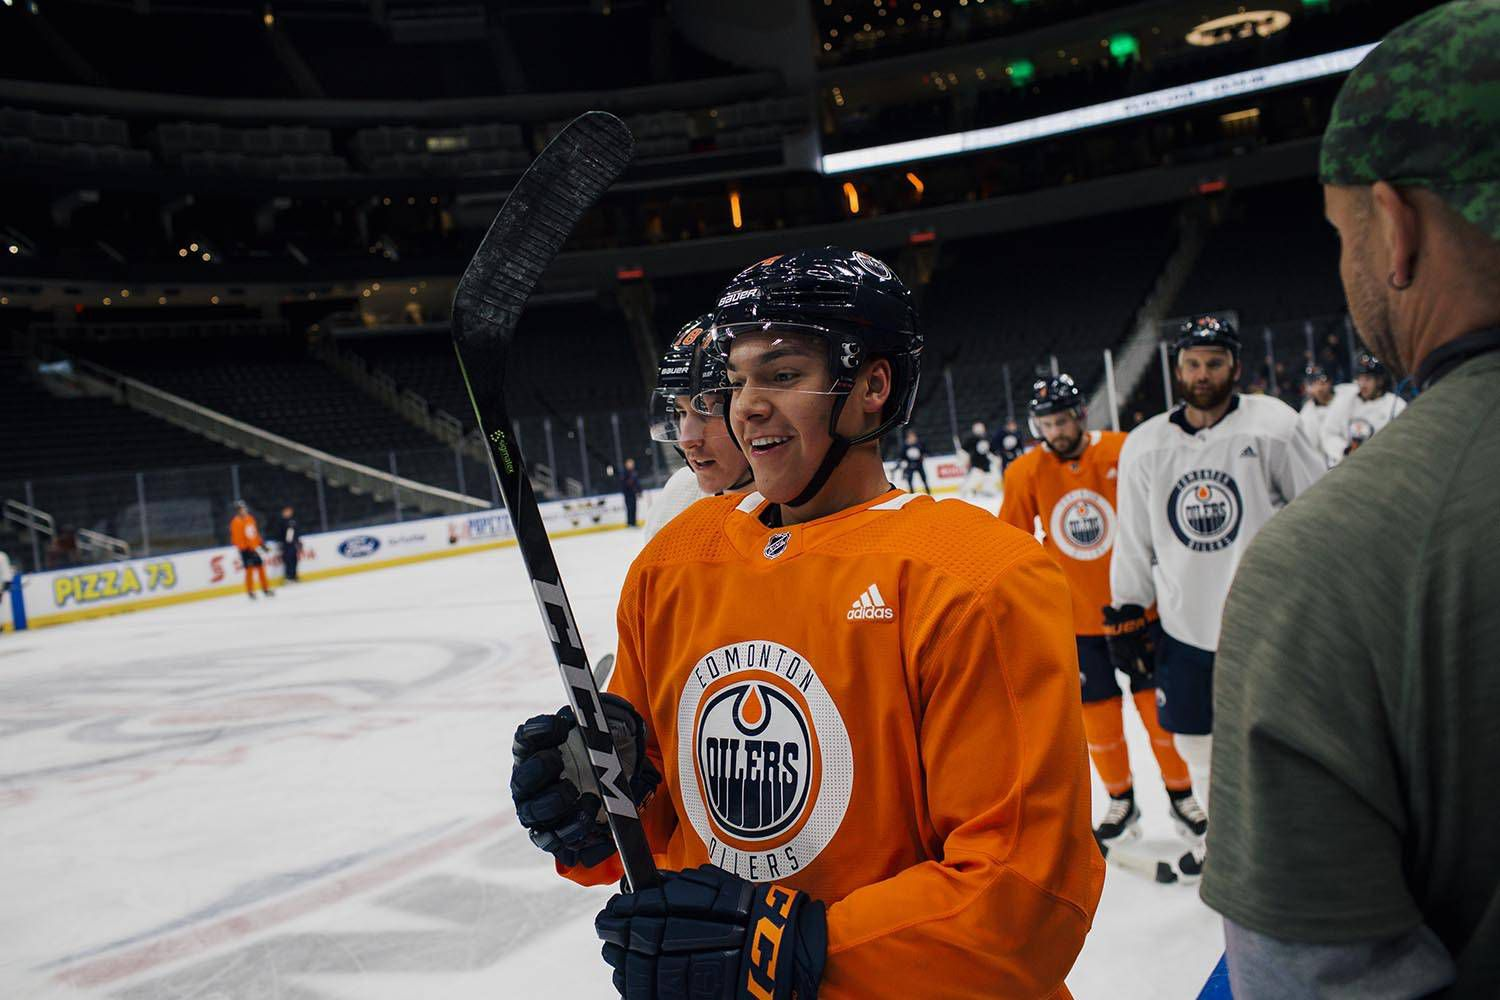 First Nations celebrate as Indigenous player Ethan Bear makes NHL debut  with Oilers 901b4597b